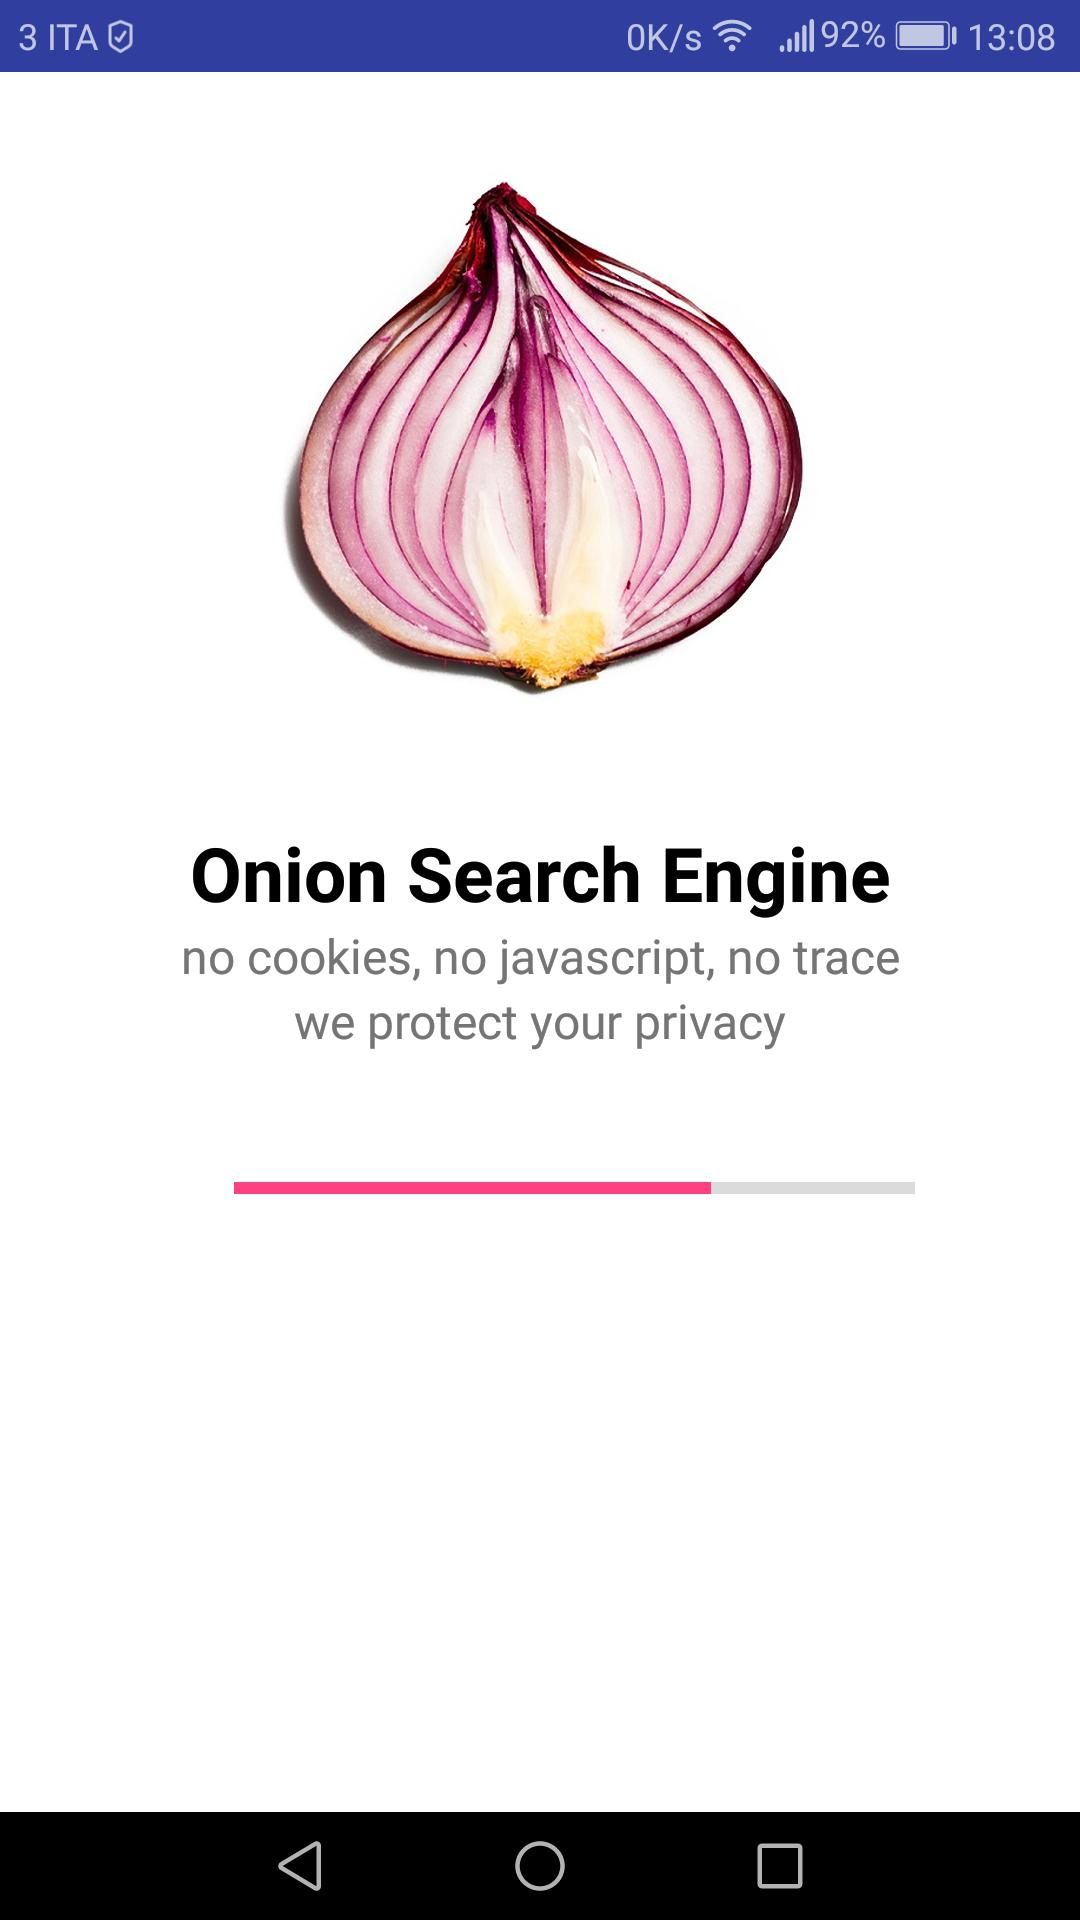 Onion Search Engine screenshot 1